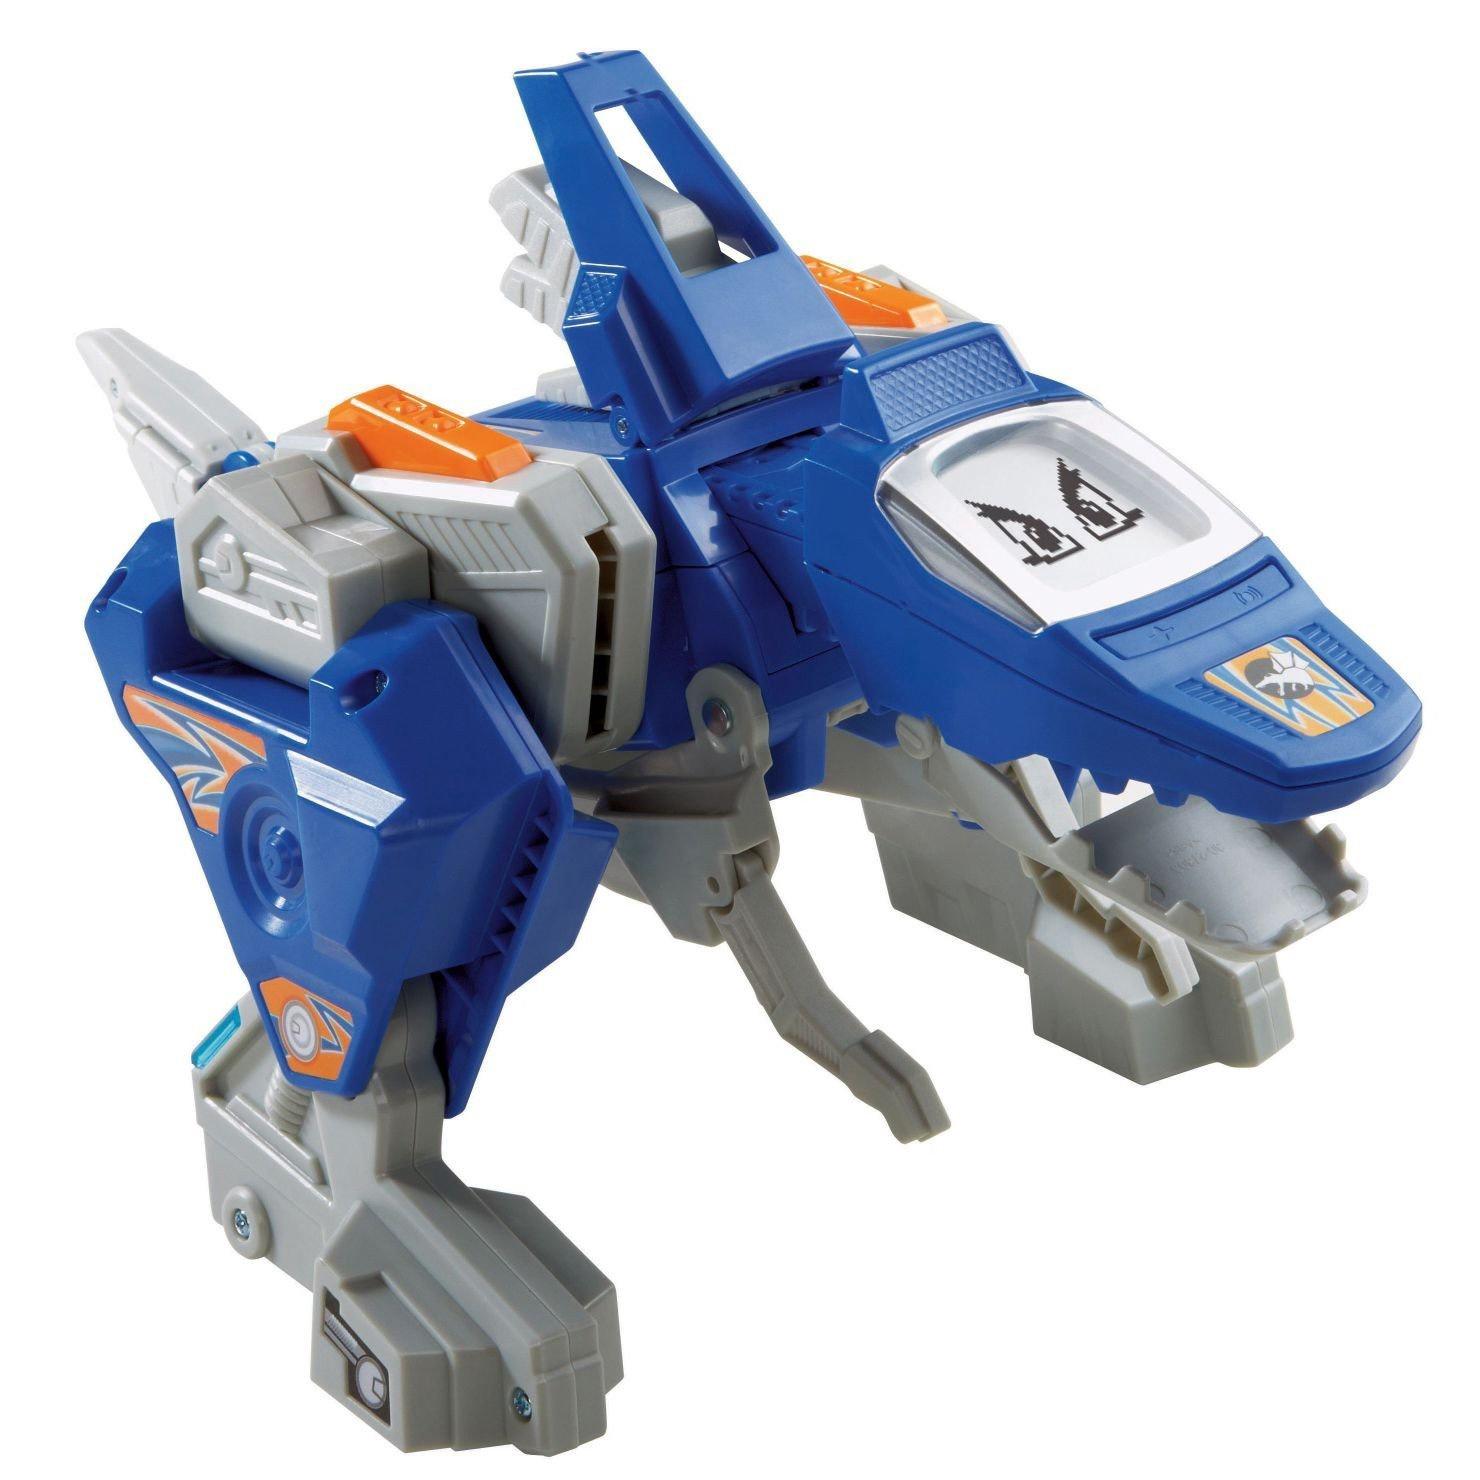 VTECH SWITCH & GO DINOS SPAN THE STEGOSAURUS